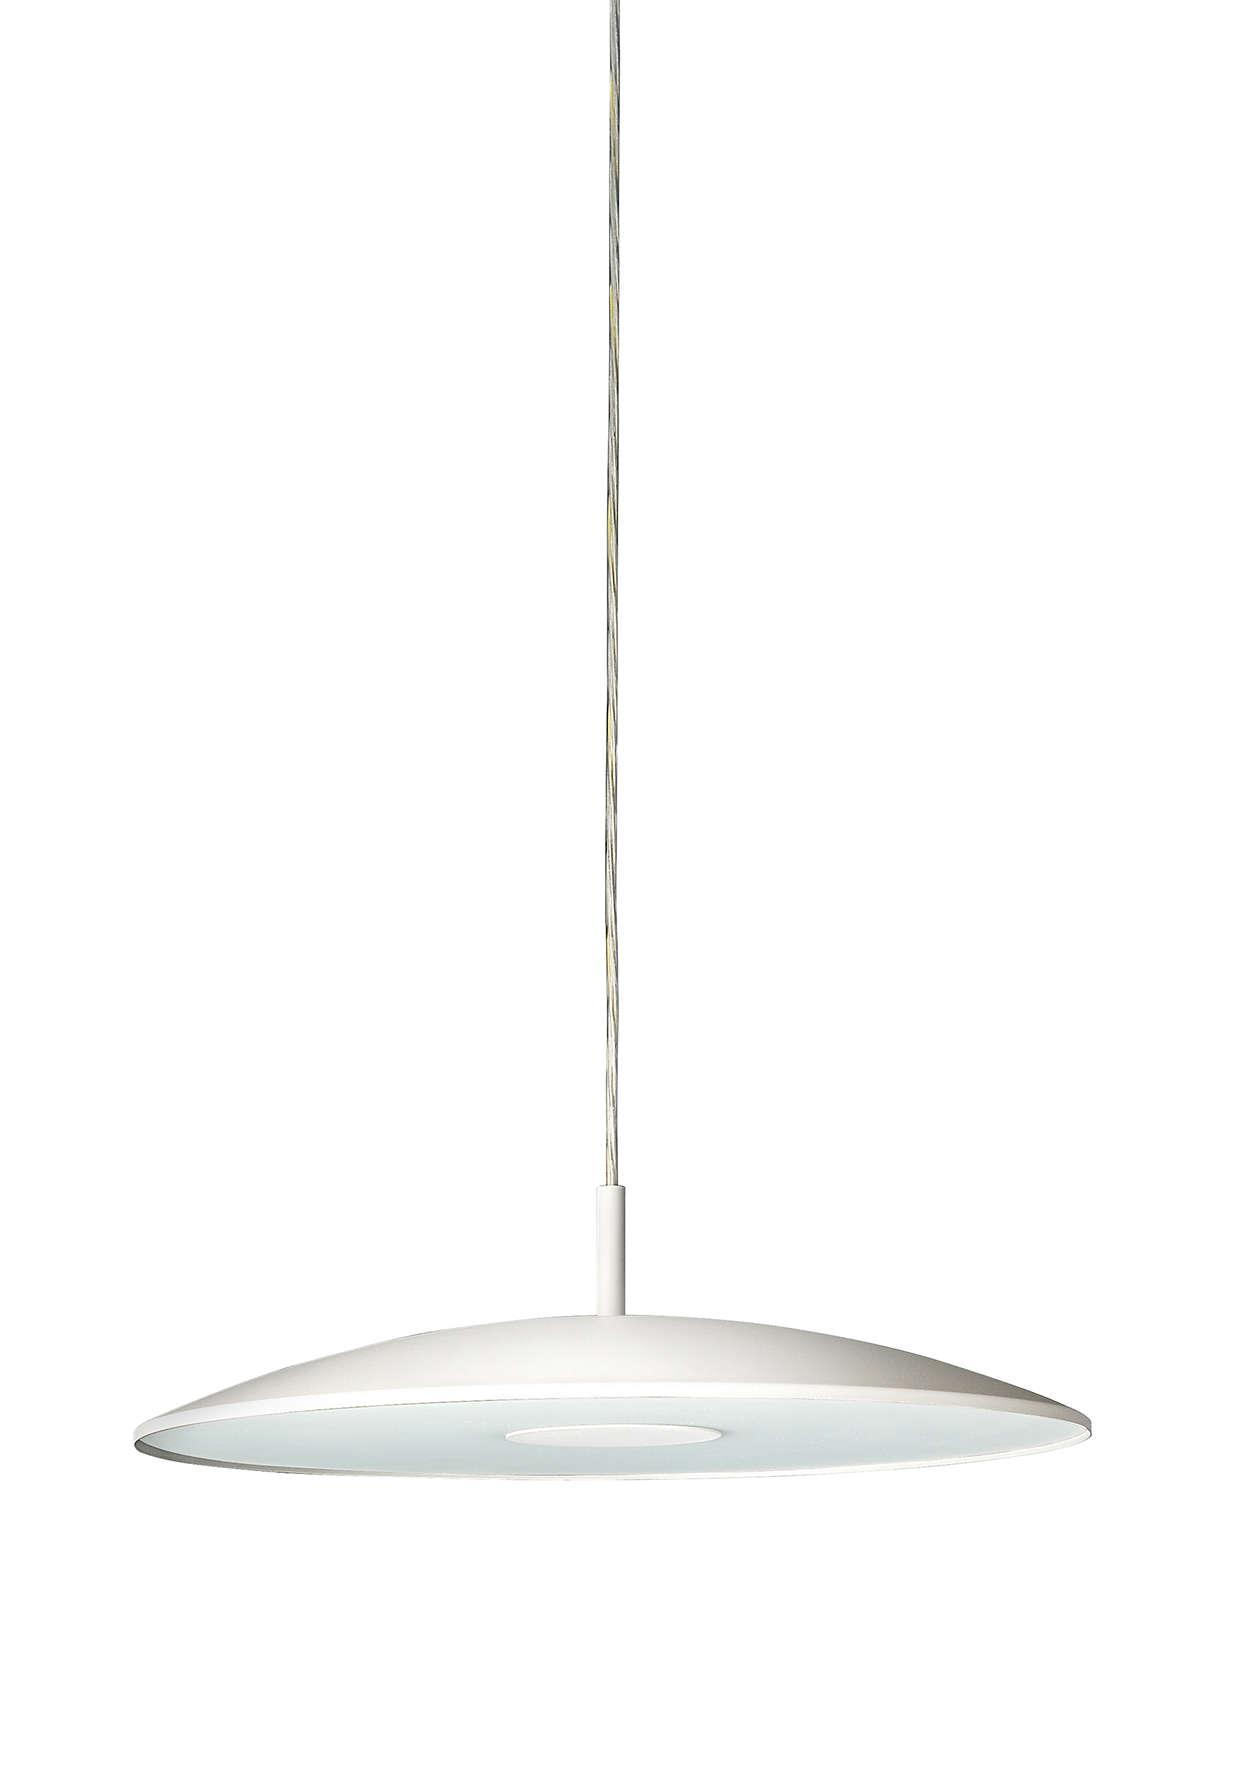 Philips 31145 LED Pendant White/Nickel 20W